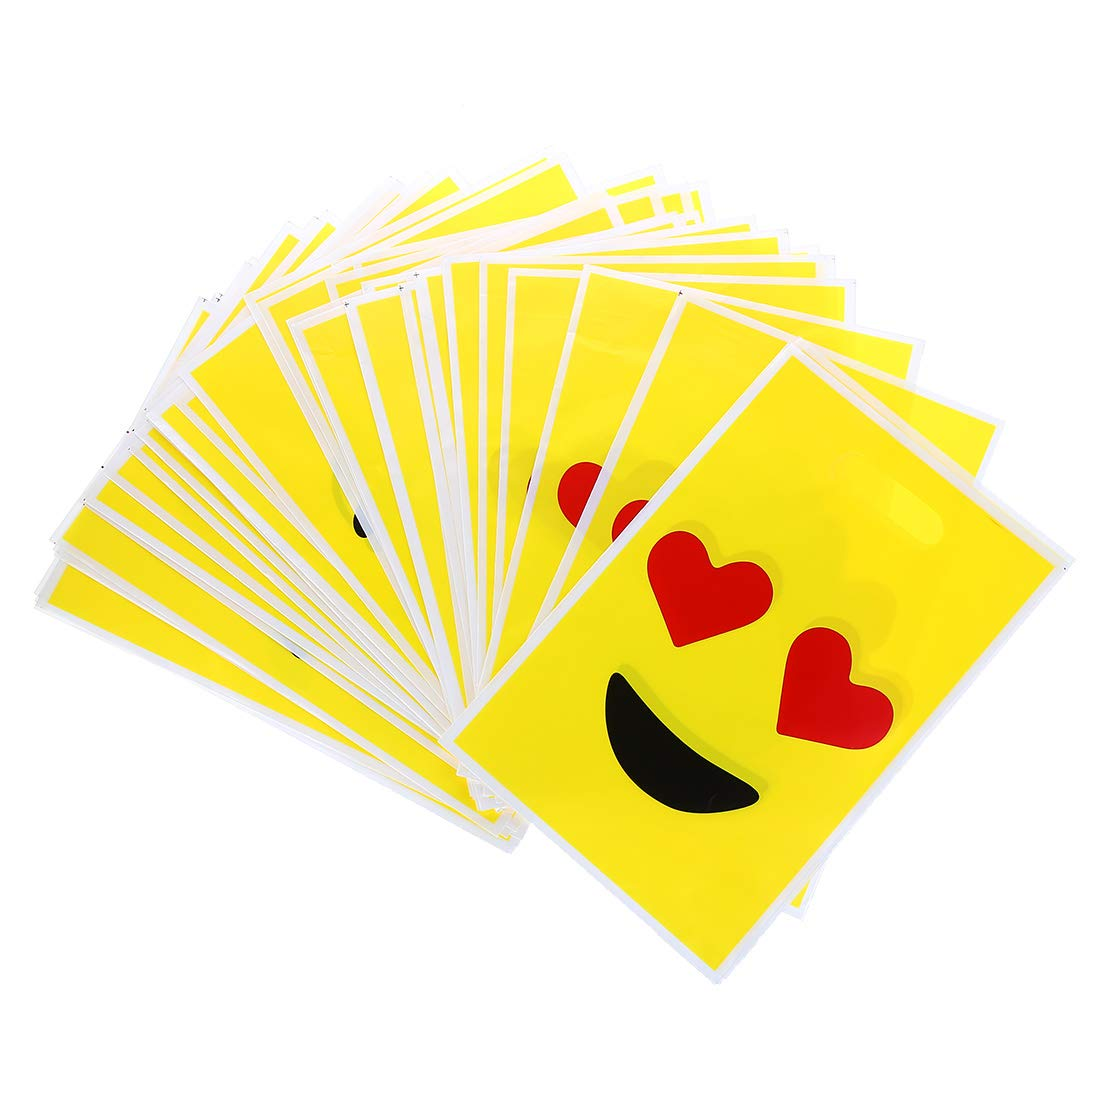 60 Pieces Emoji Party Favor Bags Great for Kids Birthday Parties and School Party 9.8 InchX6.5Inch